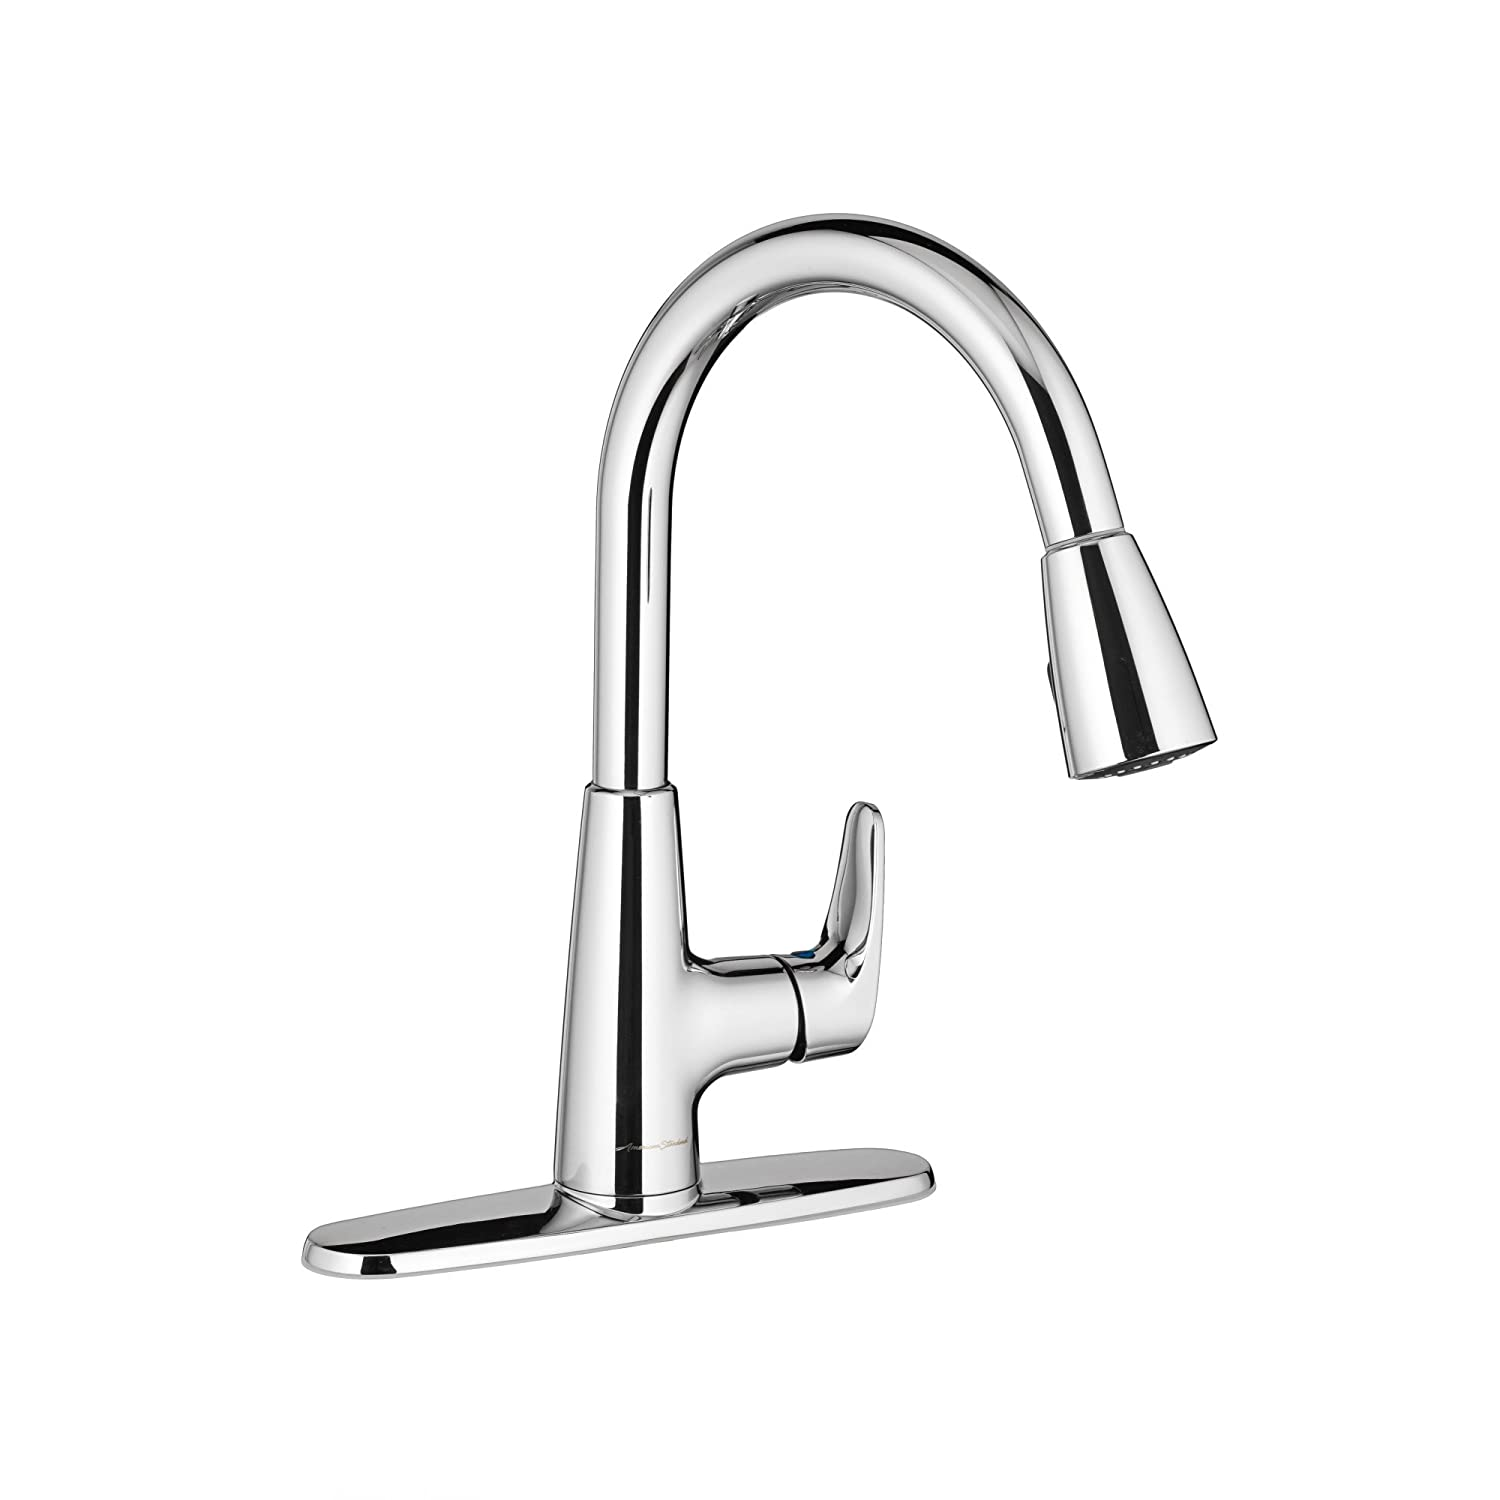 American Standard 7074300.002 Colony Pro Single-Handle Kitchen Faucet with Pull-Down Spray Polished Chrome